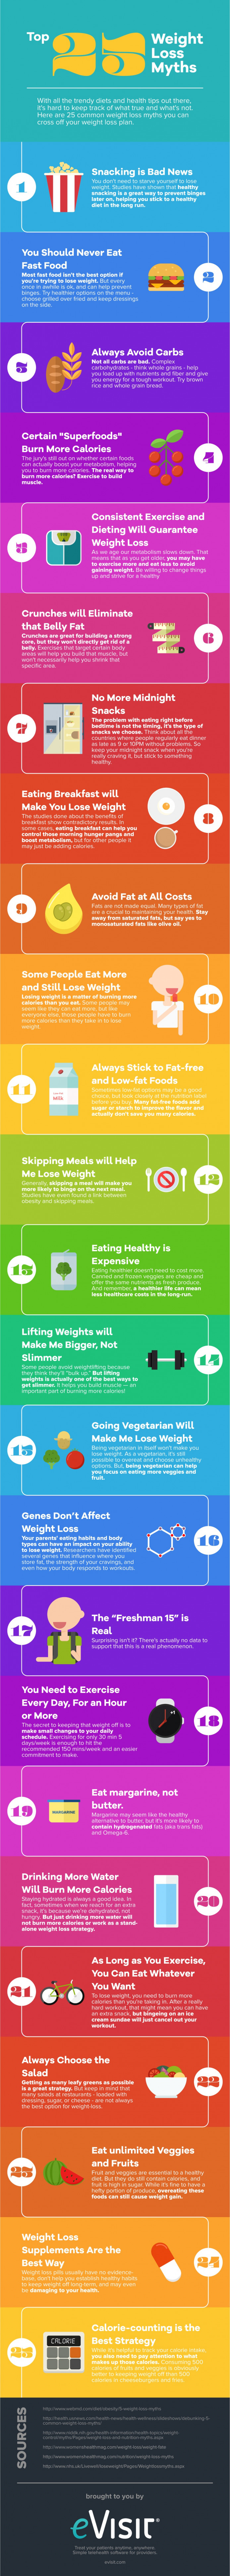 Top 25 Weight Loss Myths